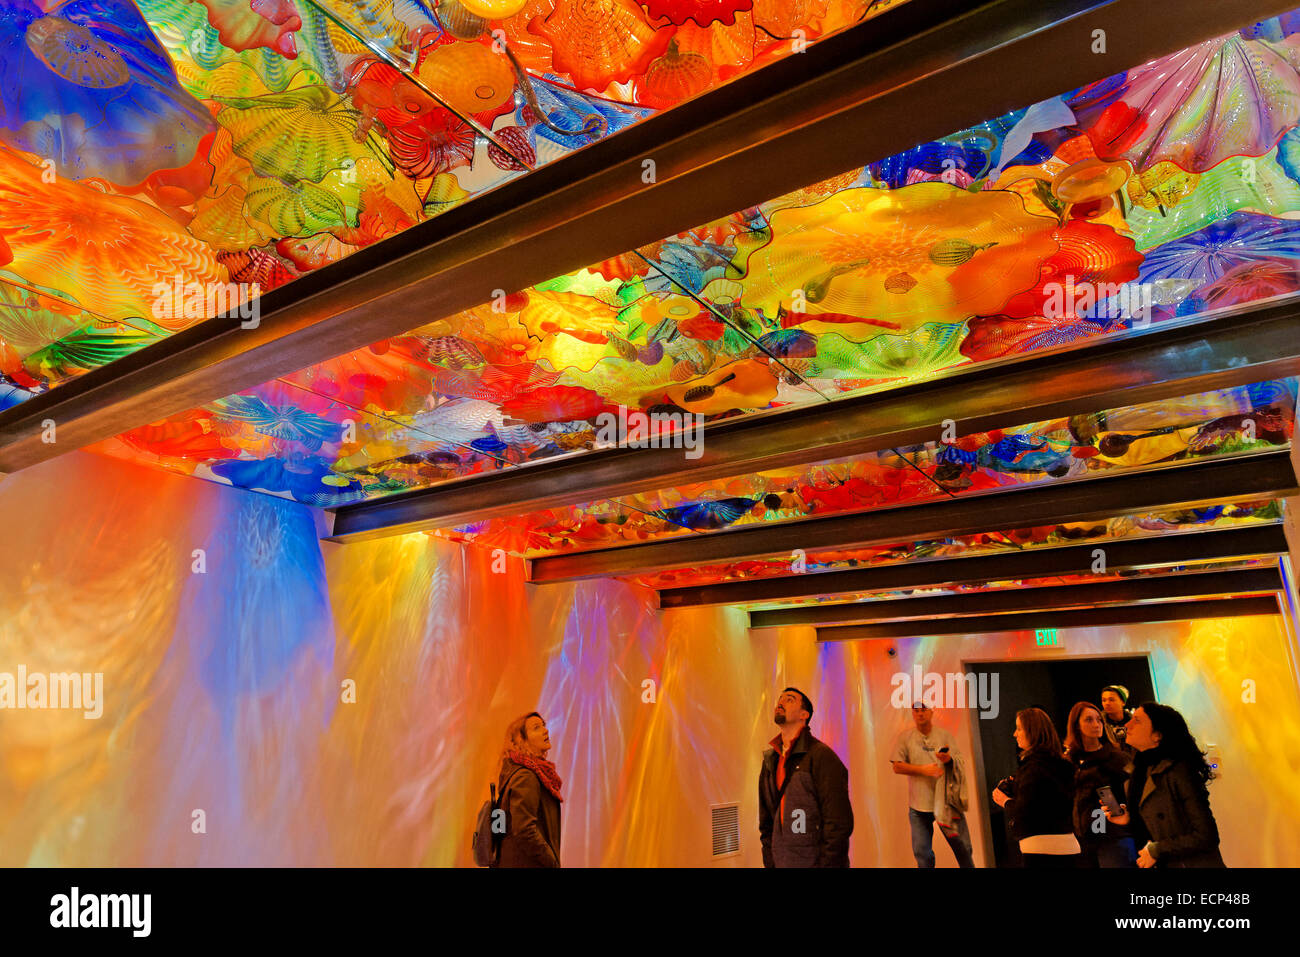 Persian Ceiling room, Chihuly Garden and Glass, Seattle, Washington State, USA - Stock Image